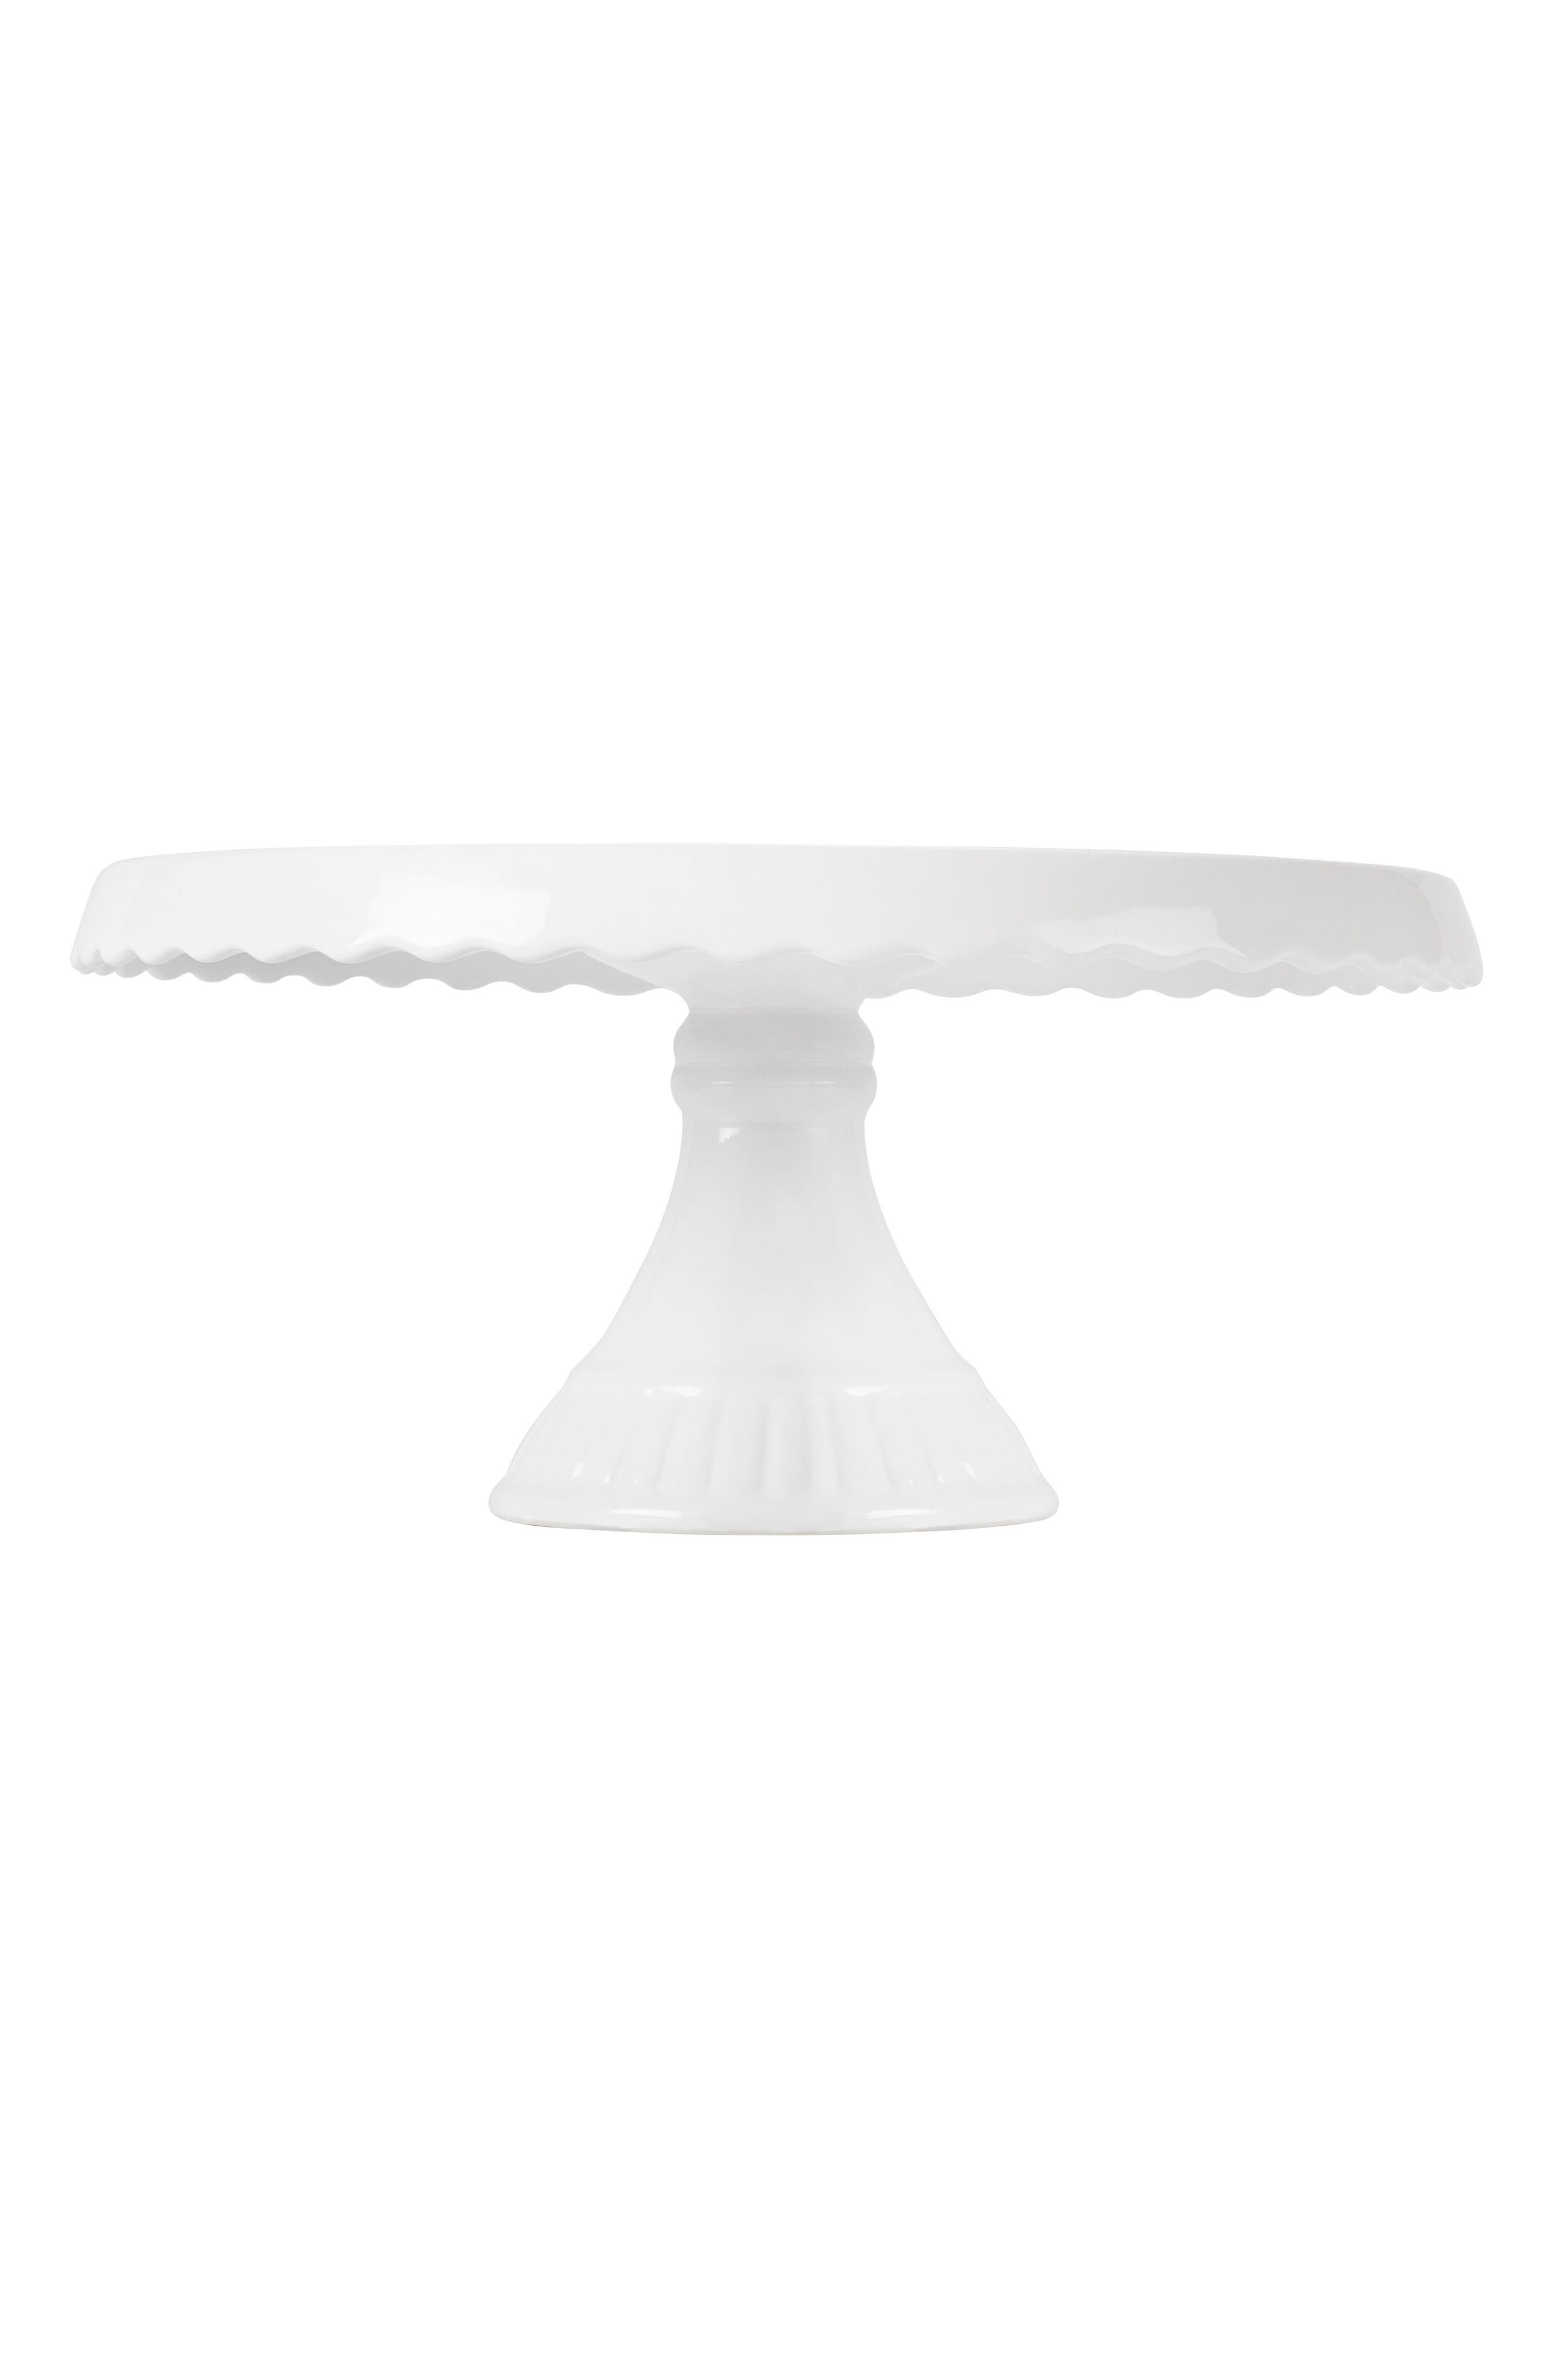 Love Cake Stand,                             Alternate thumbnail 5, color,                             710